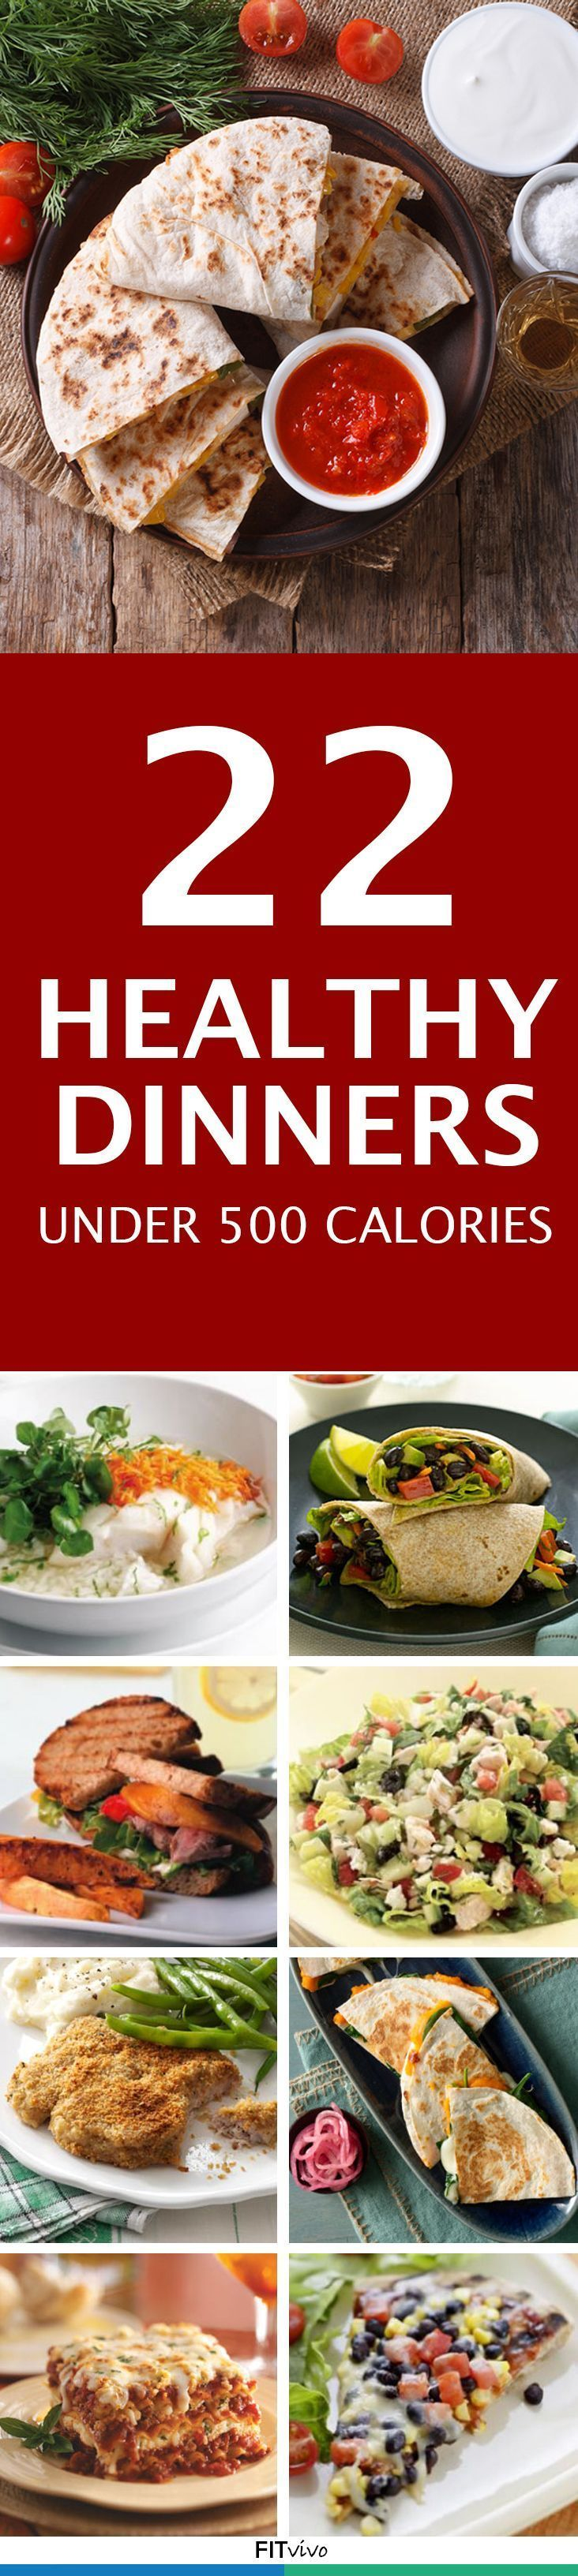 Healthy meals for two. Here are 22 dinner recipes for the week. Guilt-free, Low calorie and affordable for a family of 4 on a budget. With the light calorie count, the meals are also great for #weightloss. #healthy